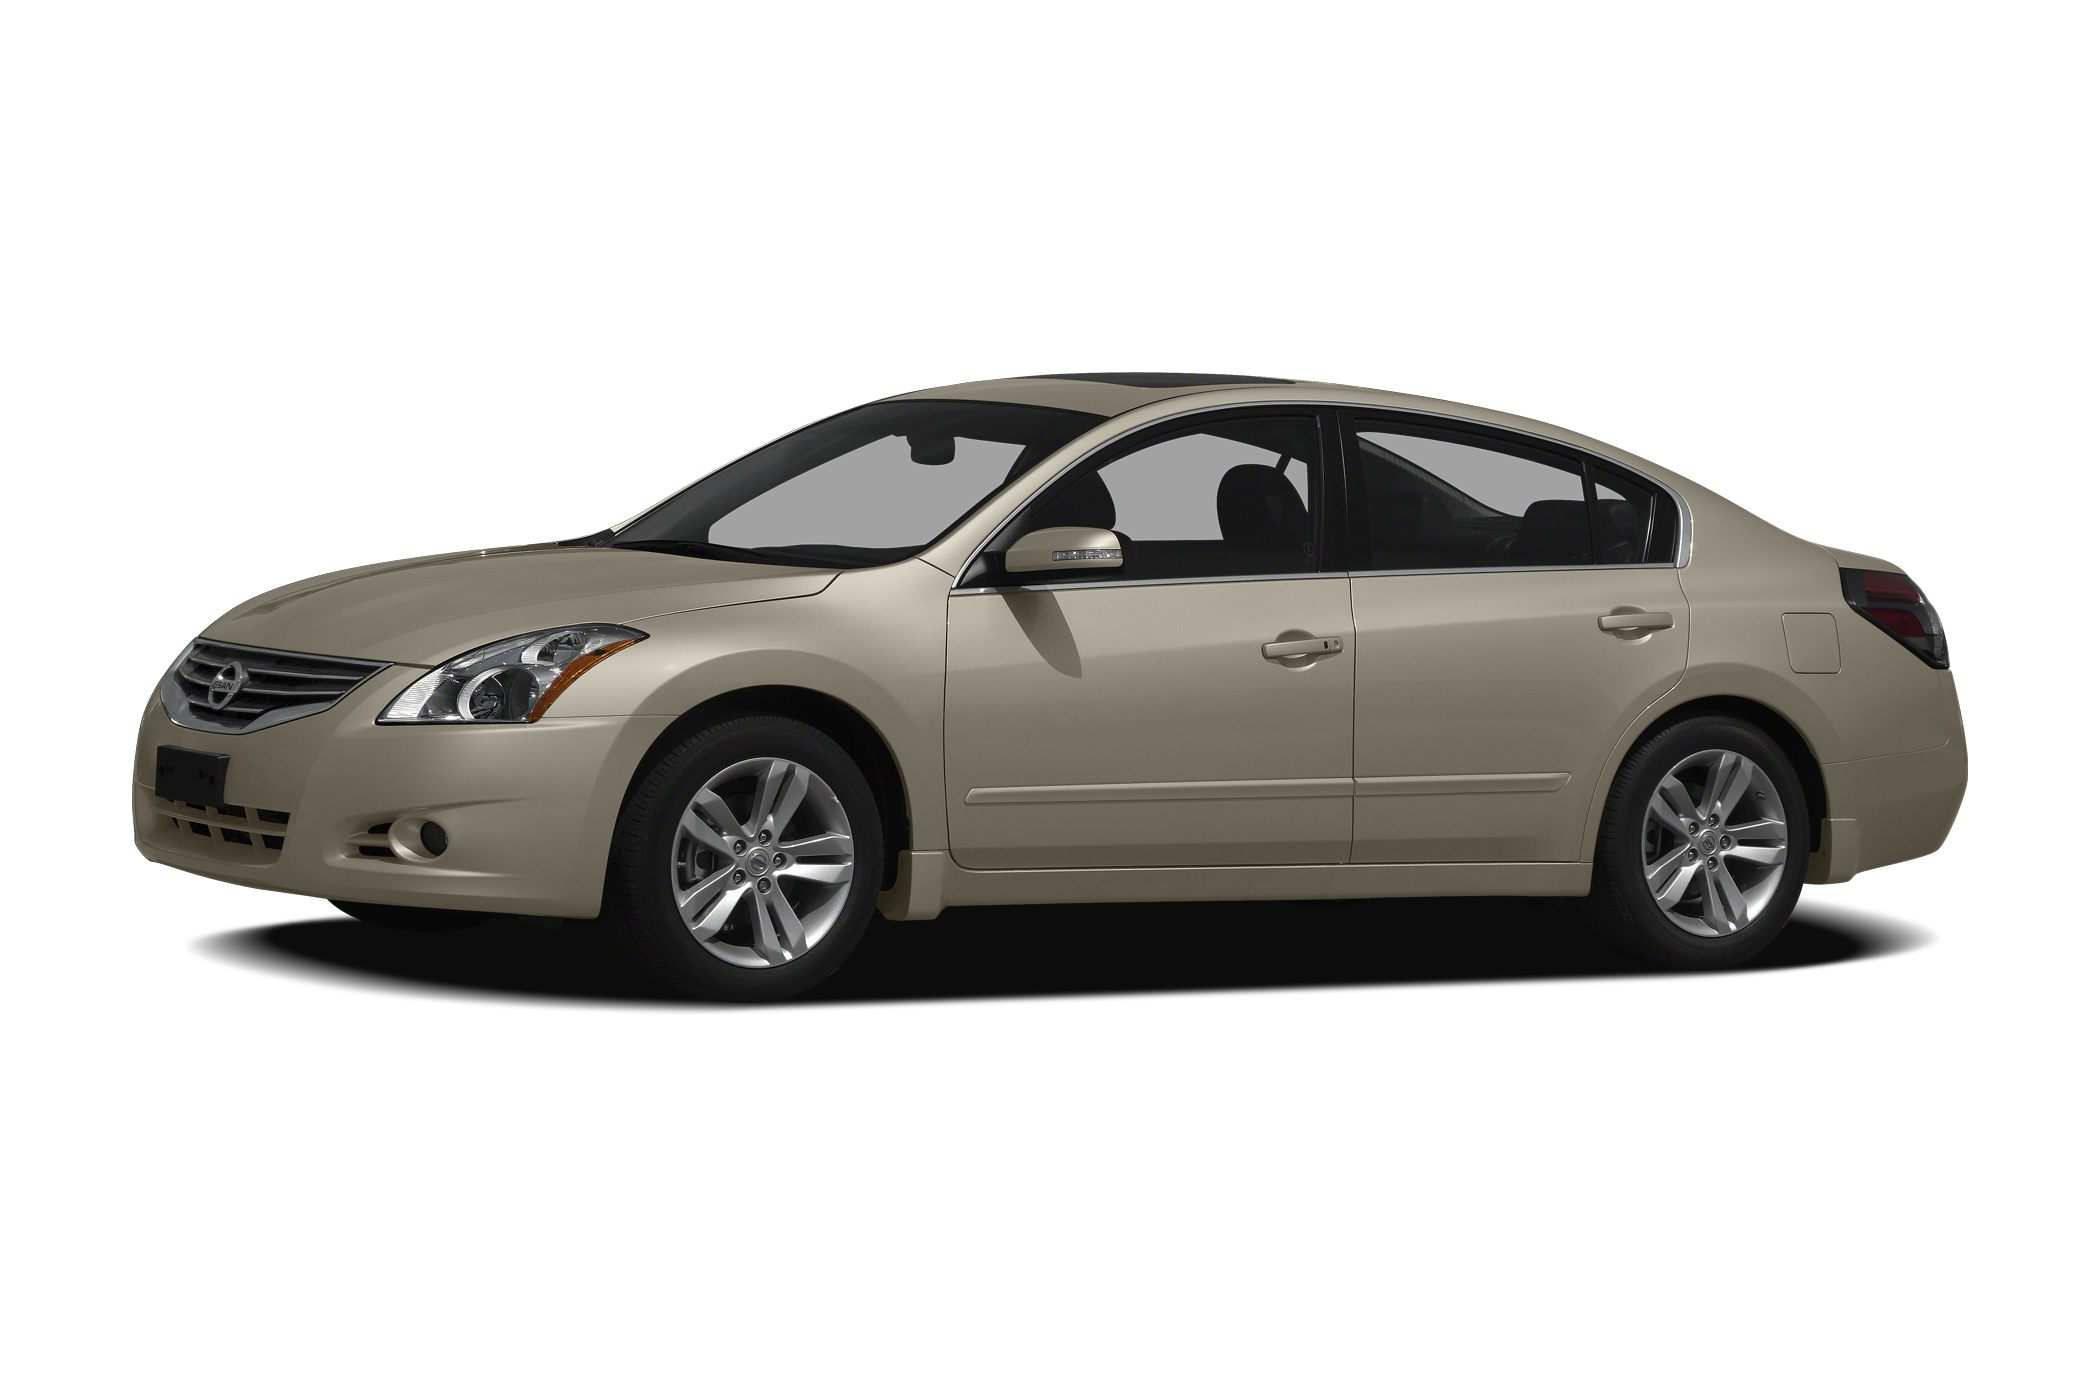 17 All New 2010 Nissan Altima Concept